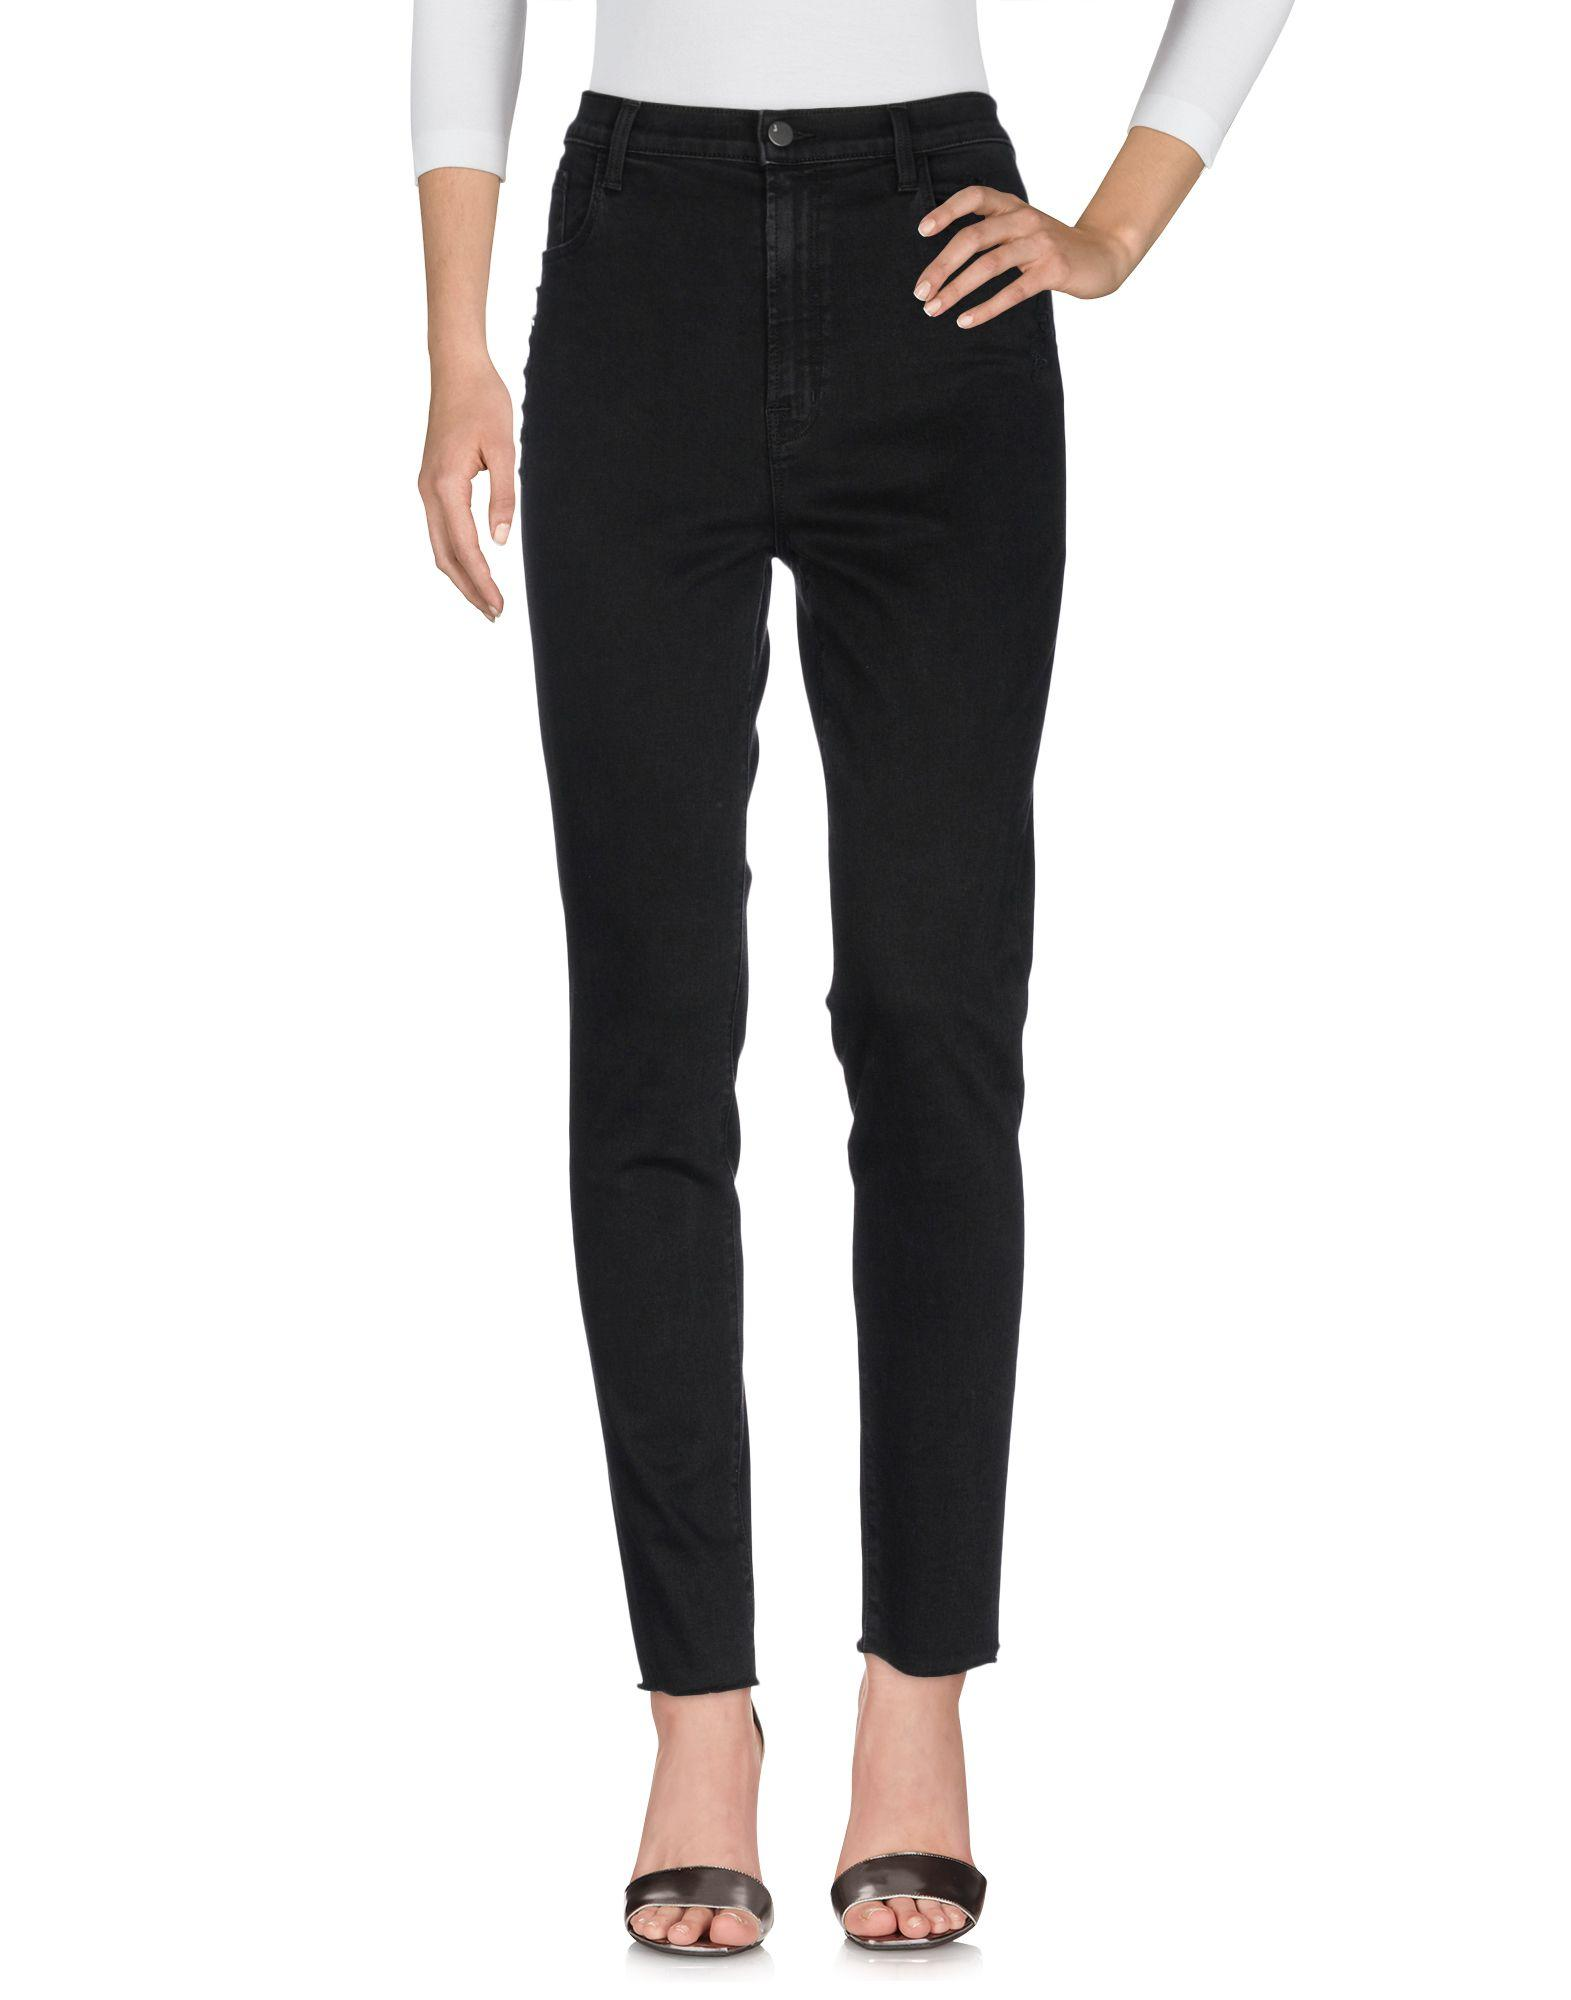 J Brand Denim Pants In Black